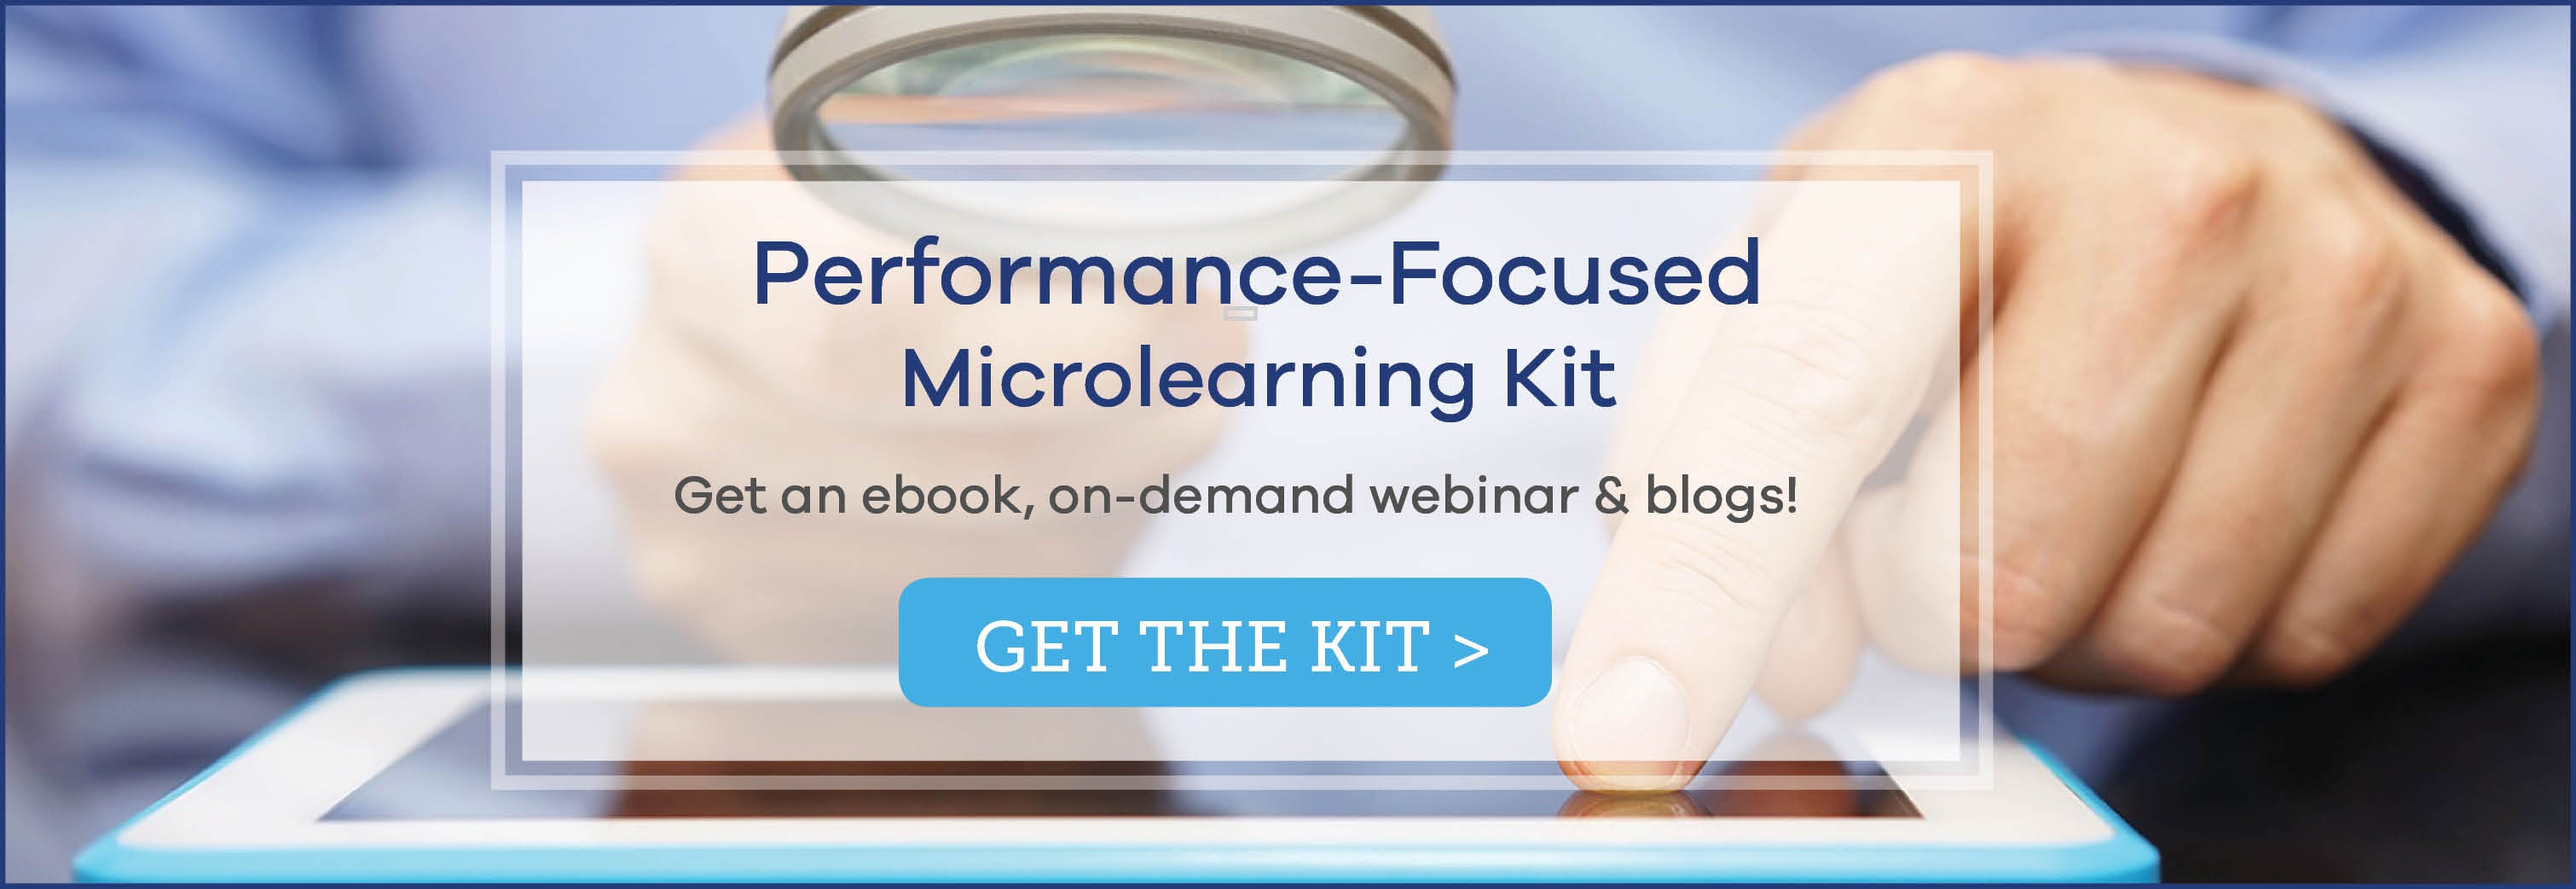 Microlearning Kit